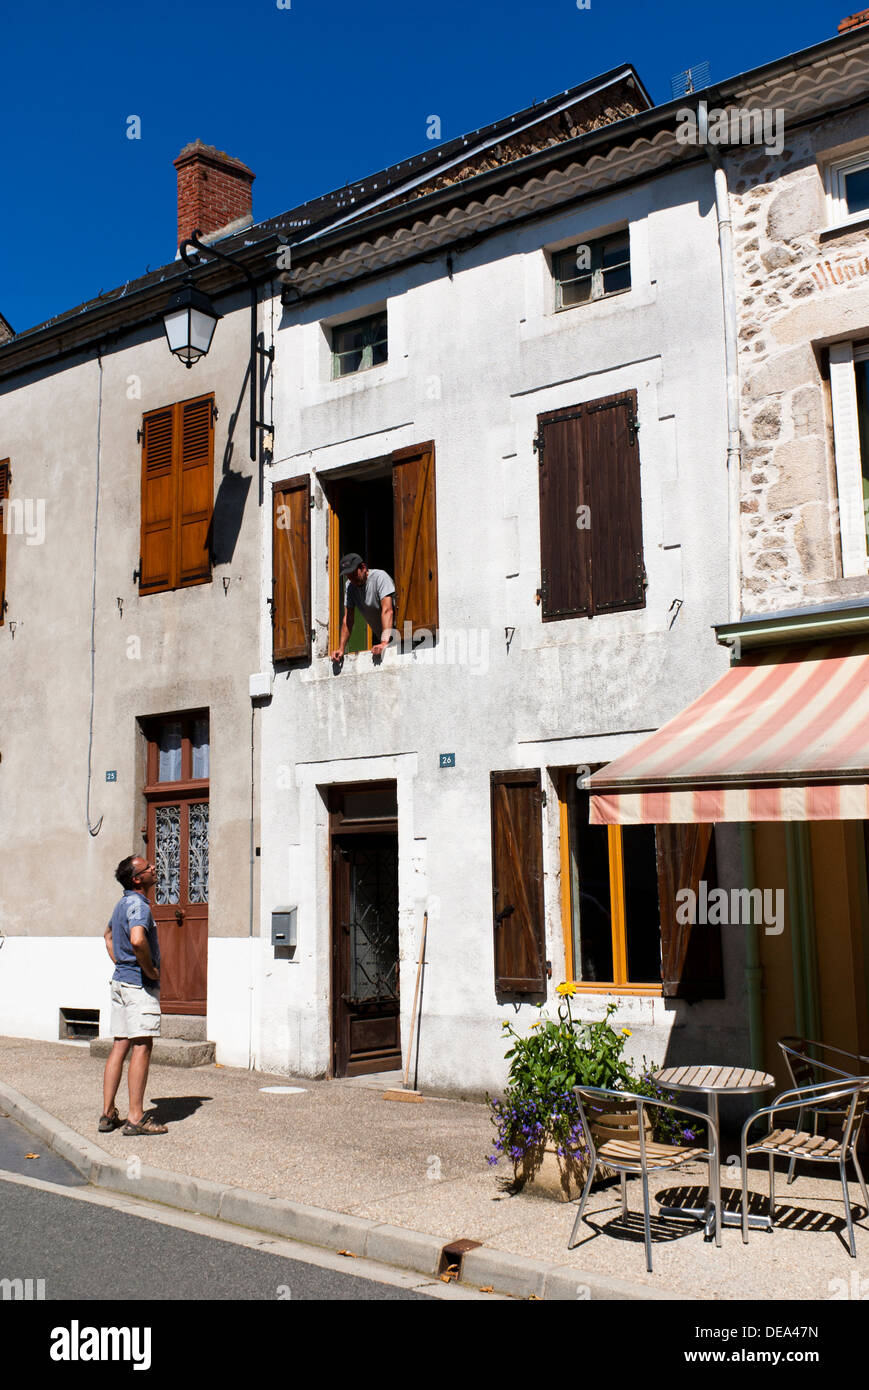 Man in window haviong conversation with neighbour in street. Le Mayet-de-Montagne, Allier, France. - Stock Image